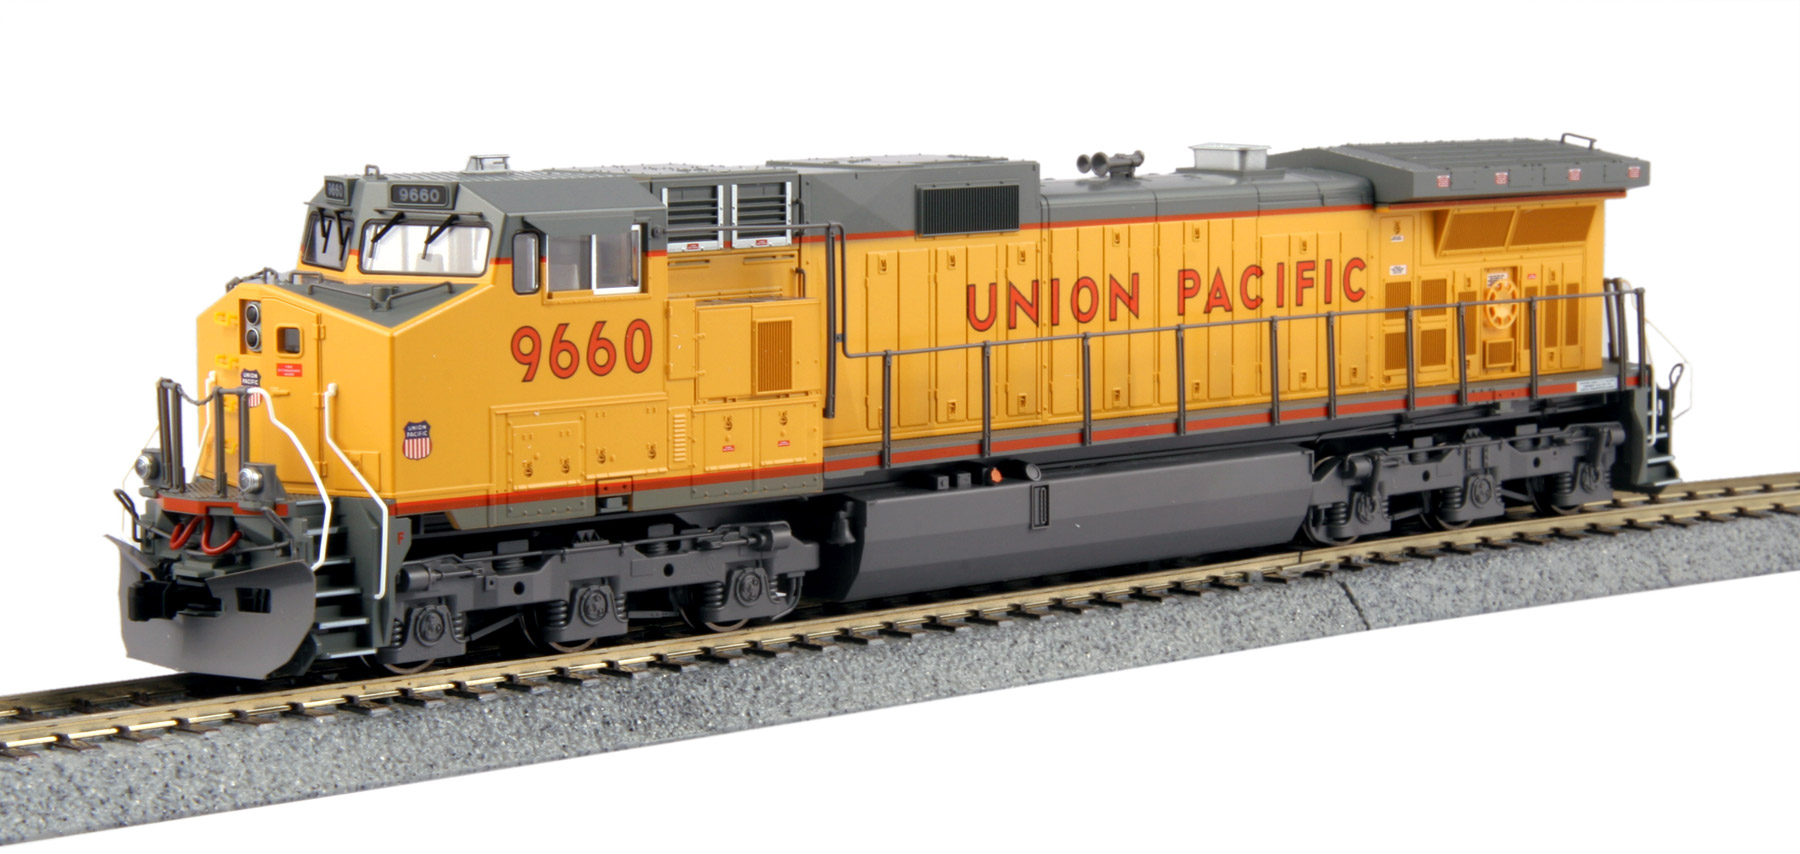 Kato 37-6633LS HO GE C44-9W Union Pacific with DCC/Sound #9660 This is a Kato 37-6633LS HO Scale GE C44-9W Union Pacific with ESU Loksound DCC/Sound #9660. Model Features: Great for pulling our Gunderson MAXI-IV double stack well cars,Precisely engineered weight distribution for more pulling power on steep grades and long trains,Lighted ditch lights in the high mount position for SP and UP (ex-SP) units,Prototypical Late Hi-Adhesion trucksa and DCC and Sound friendly construction with a speaker housing in the fuel tank and standard 8 pin DCC plug.Condition: Factory New (C-9All original; unused; factory rubs and evidence of handling, shipping and factory test run.Standards for all toy train related accessory items apply to the visual appearance of the item and do not consider the operating functionality of the equipment.Condition and Grading Standards are subjective, at best, and are intended to act as a guide. )Operational Status: FunctionalThis item is brand new from the factory.Original Box: Yes (P-9May have store stamps and price tags. Has inner liners.)Manufacturer: KatoModel Number: 376633LSMSRP: $295.00Scale/Era: HO ModernModel Type: Diesel LocoAvailability: Ships in 1 Business Day!The Trainz SKU for this item is P12174104. Track: 12174104 - No Location Assigned - 001 - TrainzAuctionGroup00UNK - TDIDUNK